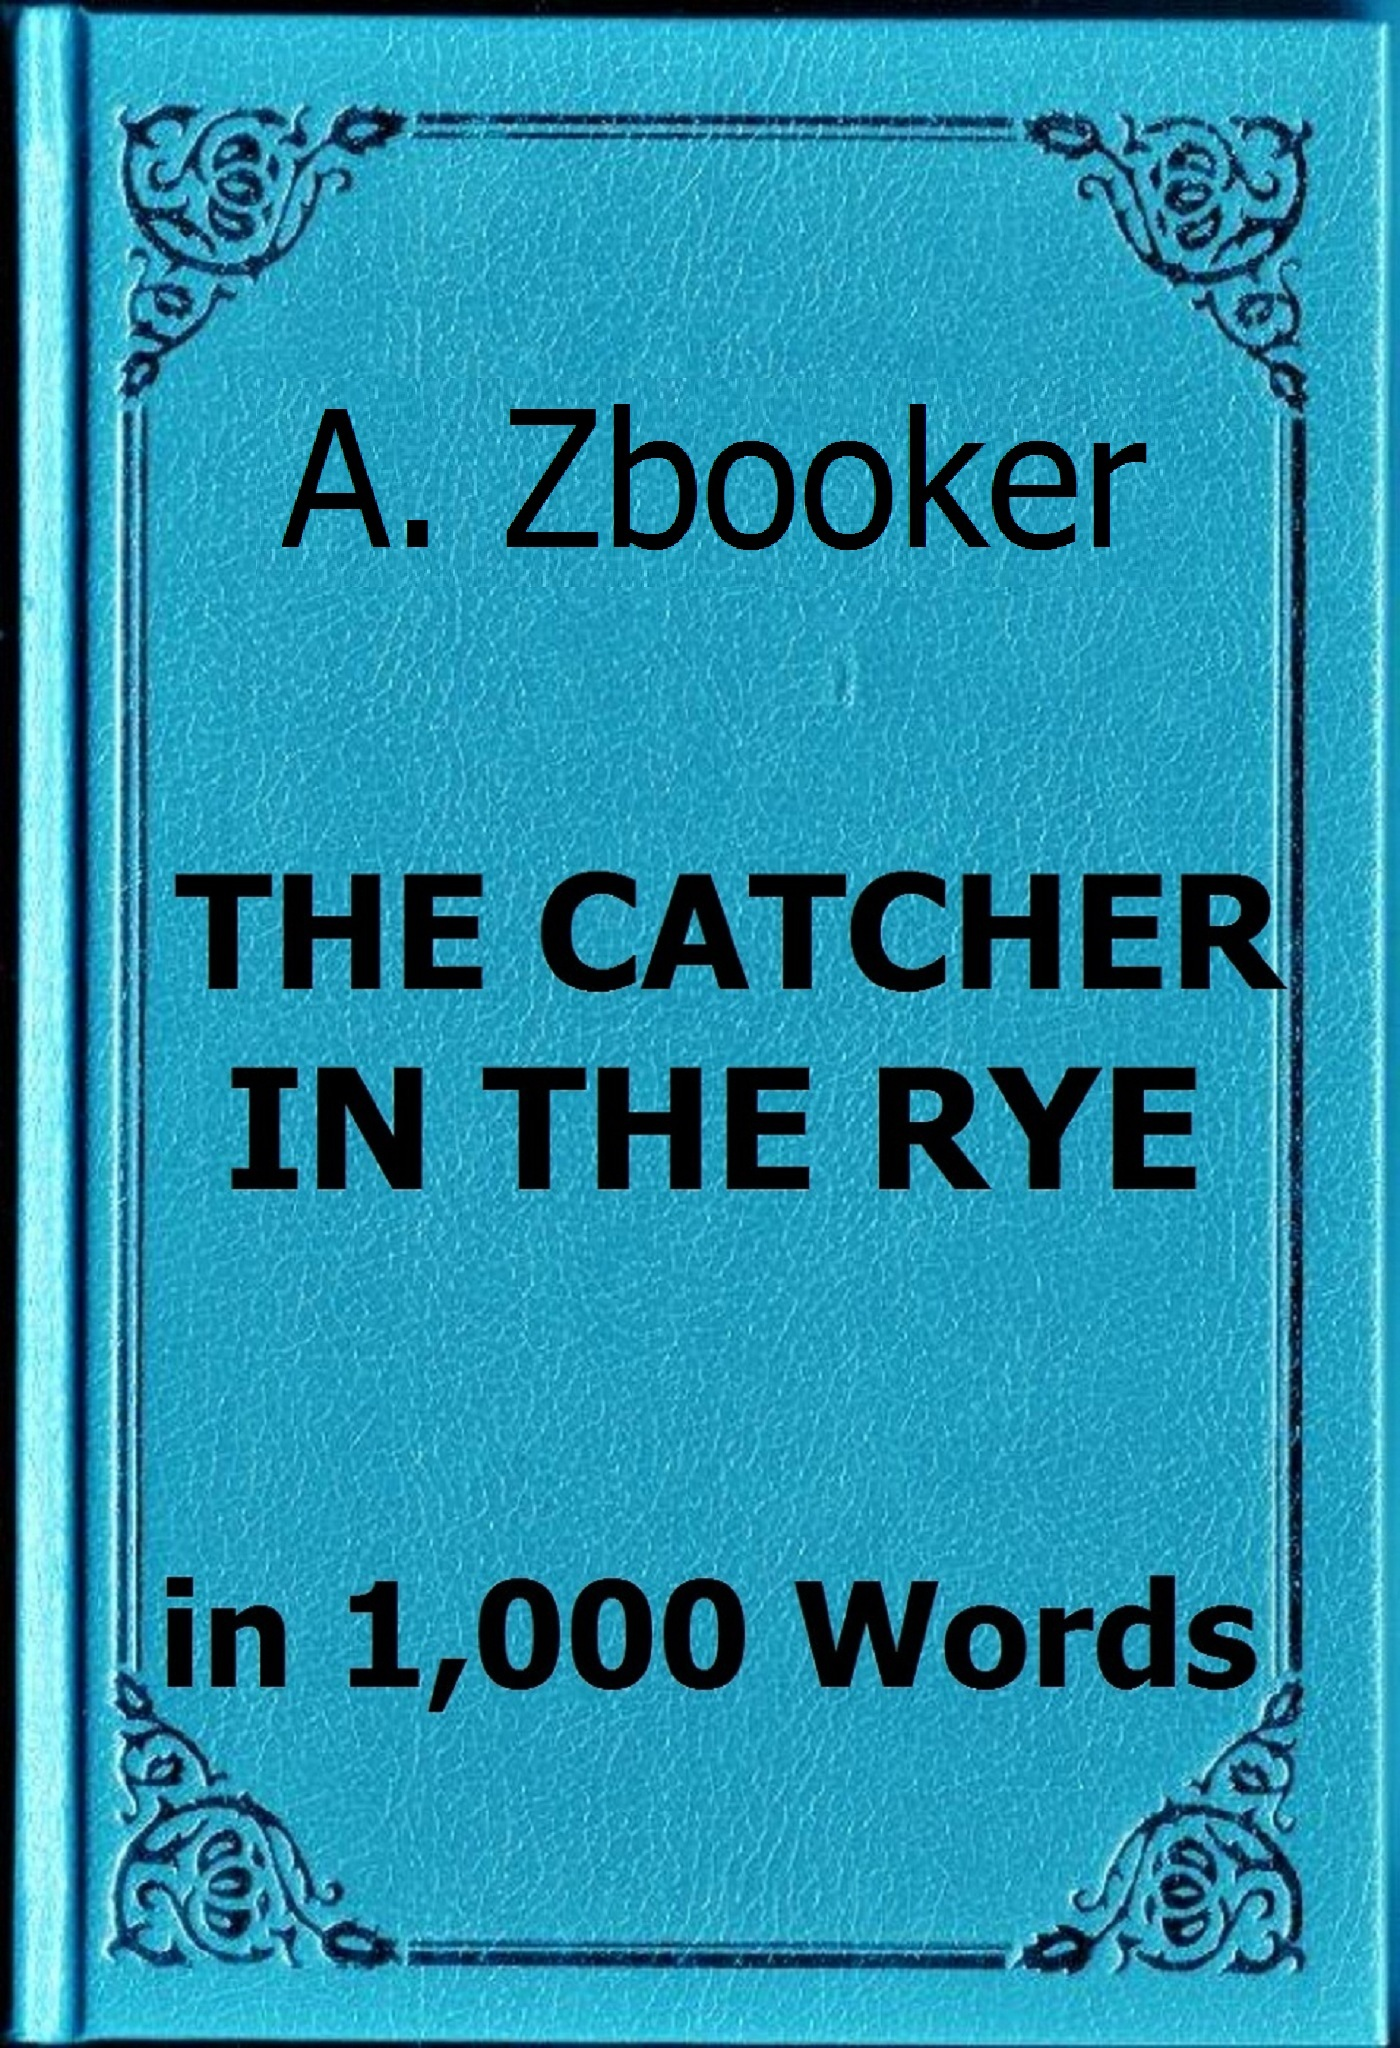 an overview of the first person narration in the novel the catcher in the rye by j d salinger Before his novel, jd salinger was of and the hero's first person after-the-fact narration indicates rev of the catcher in the rye, by jd salinger.